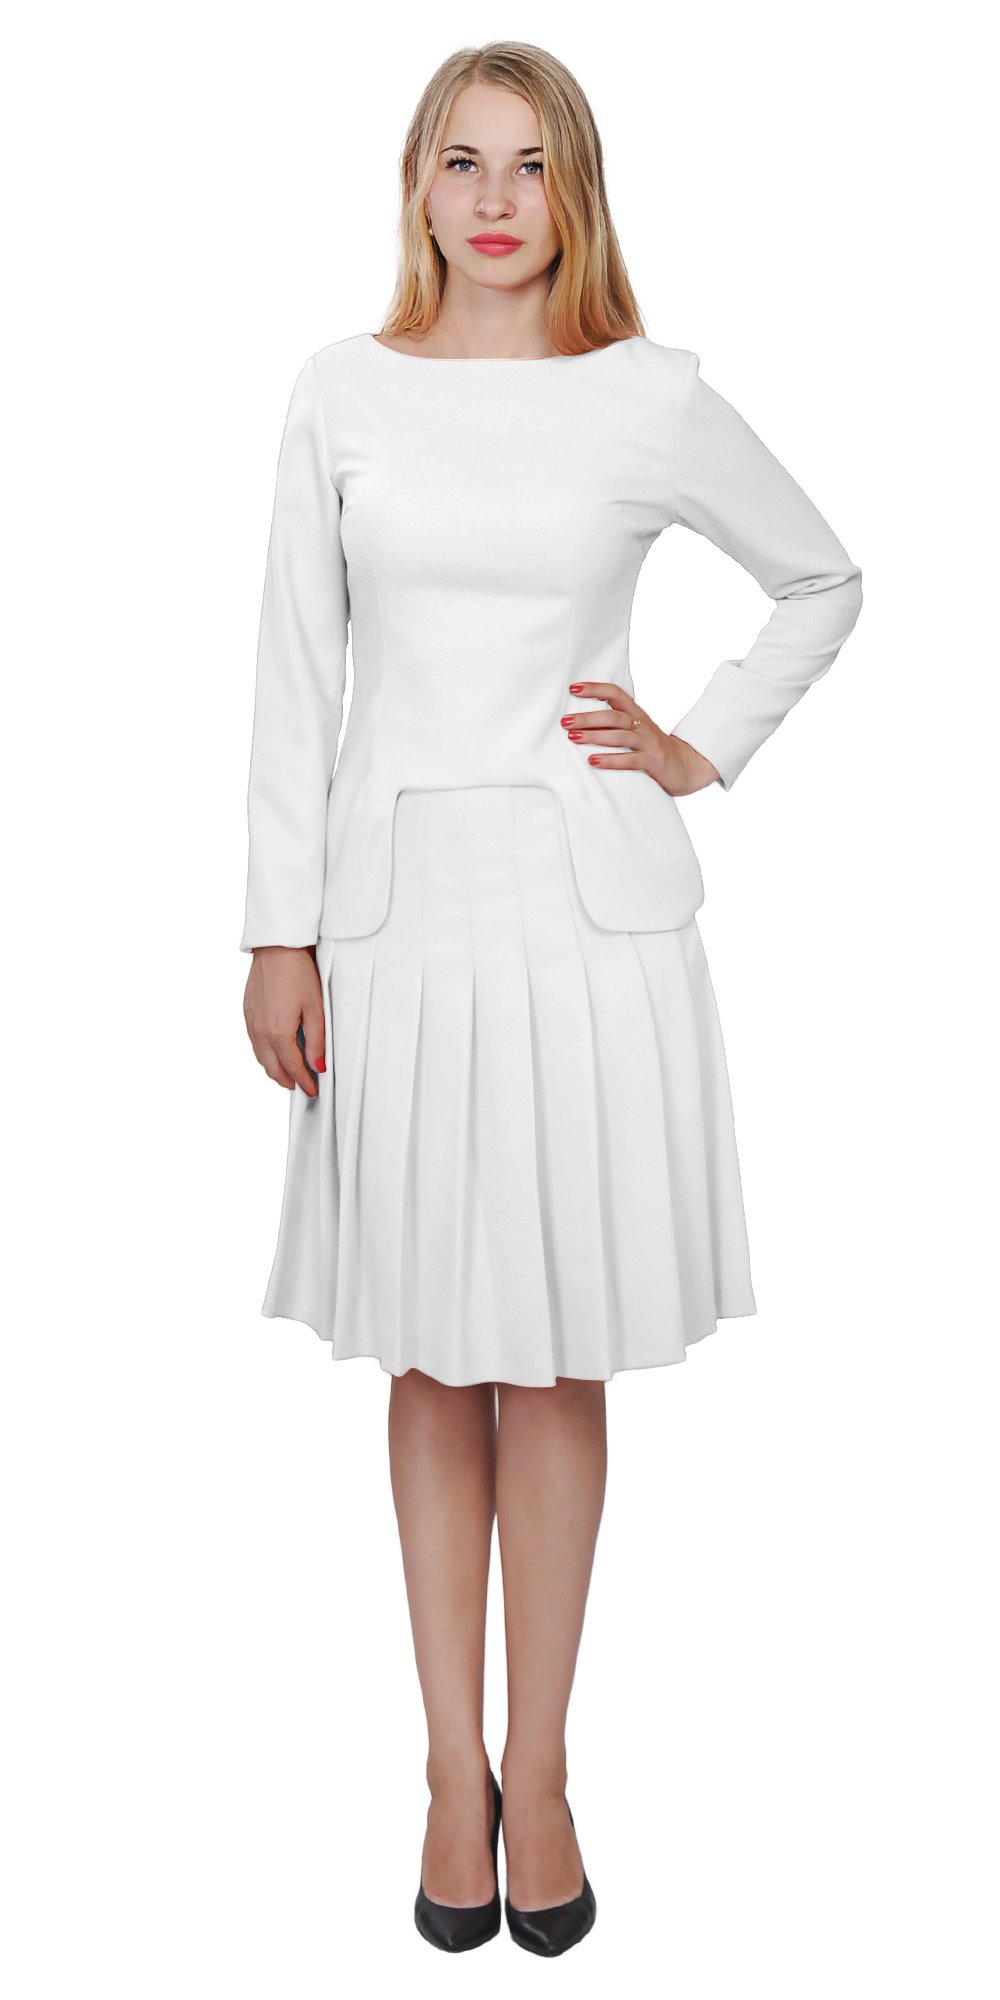 Marycrafts Womens Church Office Business Skirt Suits W Long Sleeves 18 White